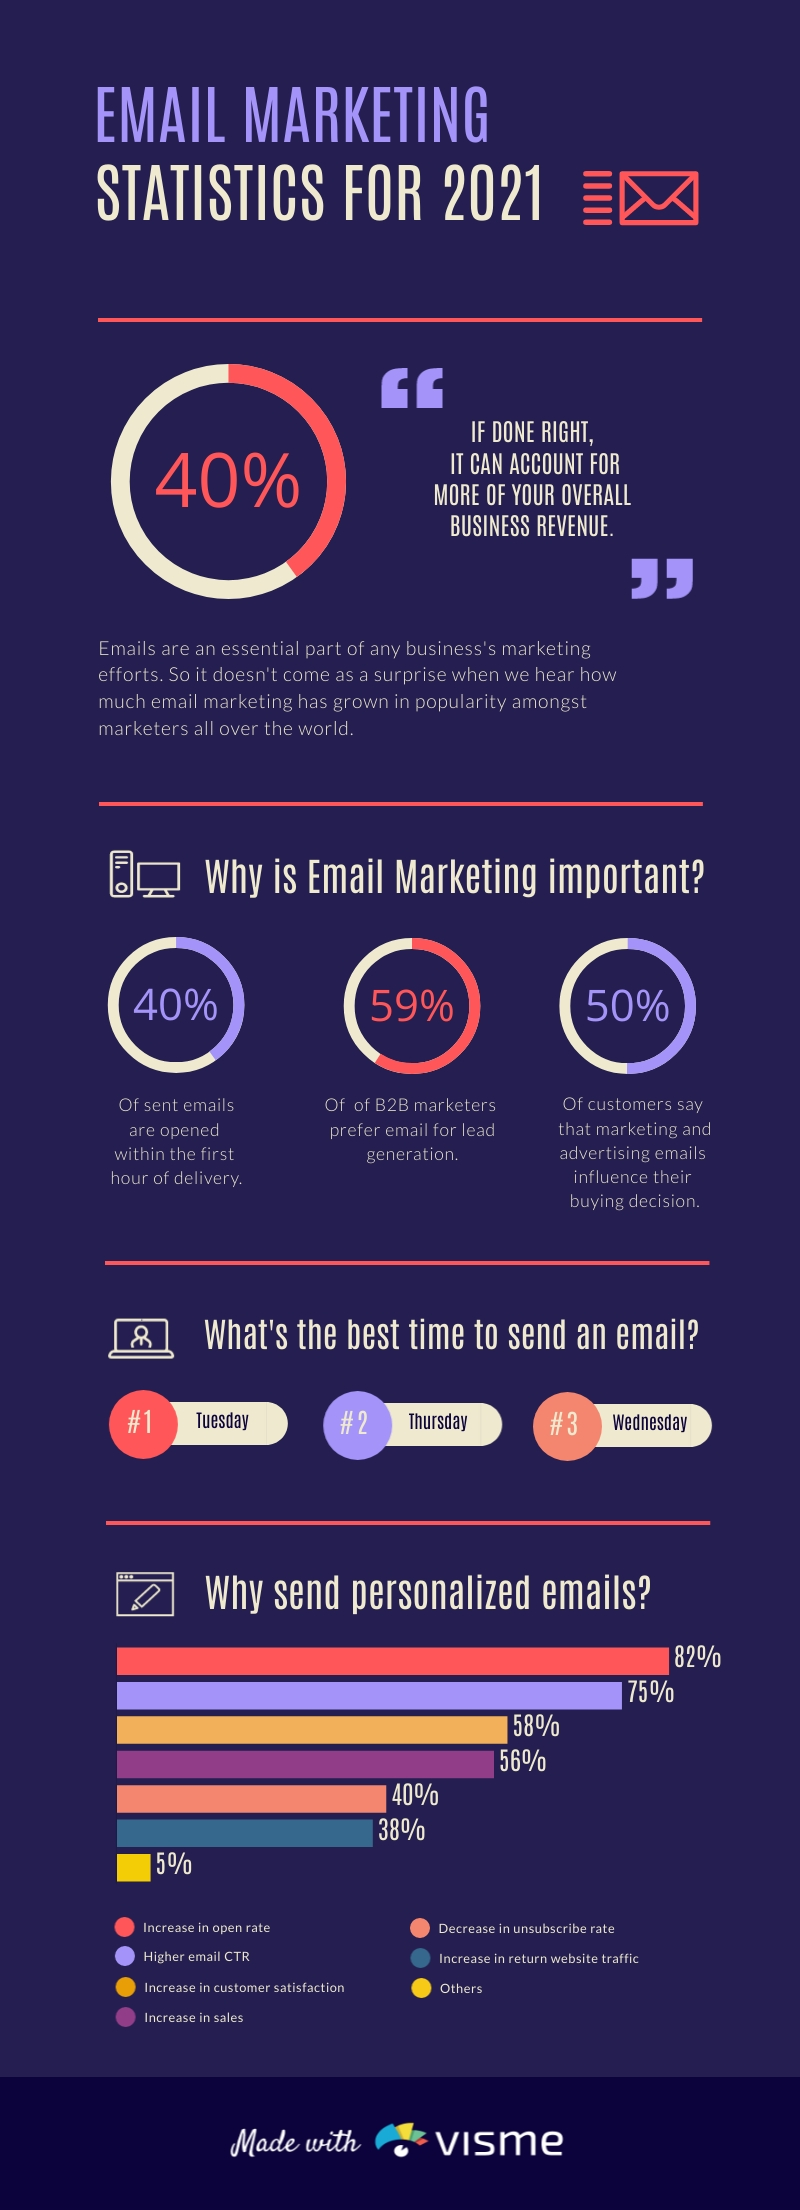 An infographic sharing email marketing statistics.